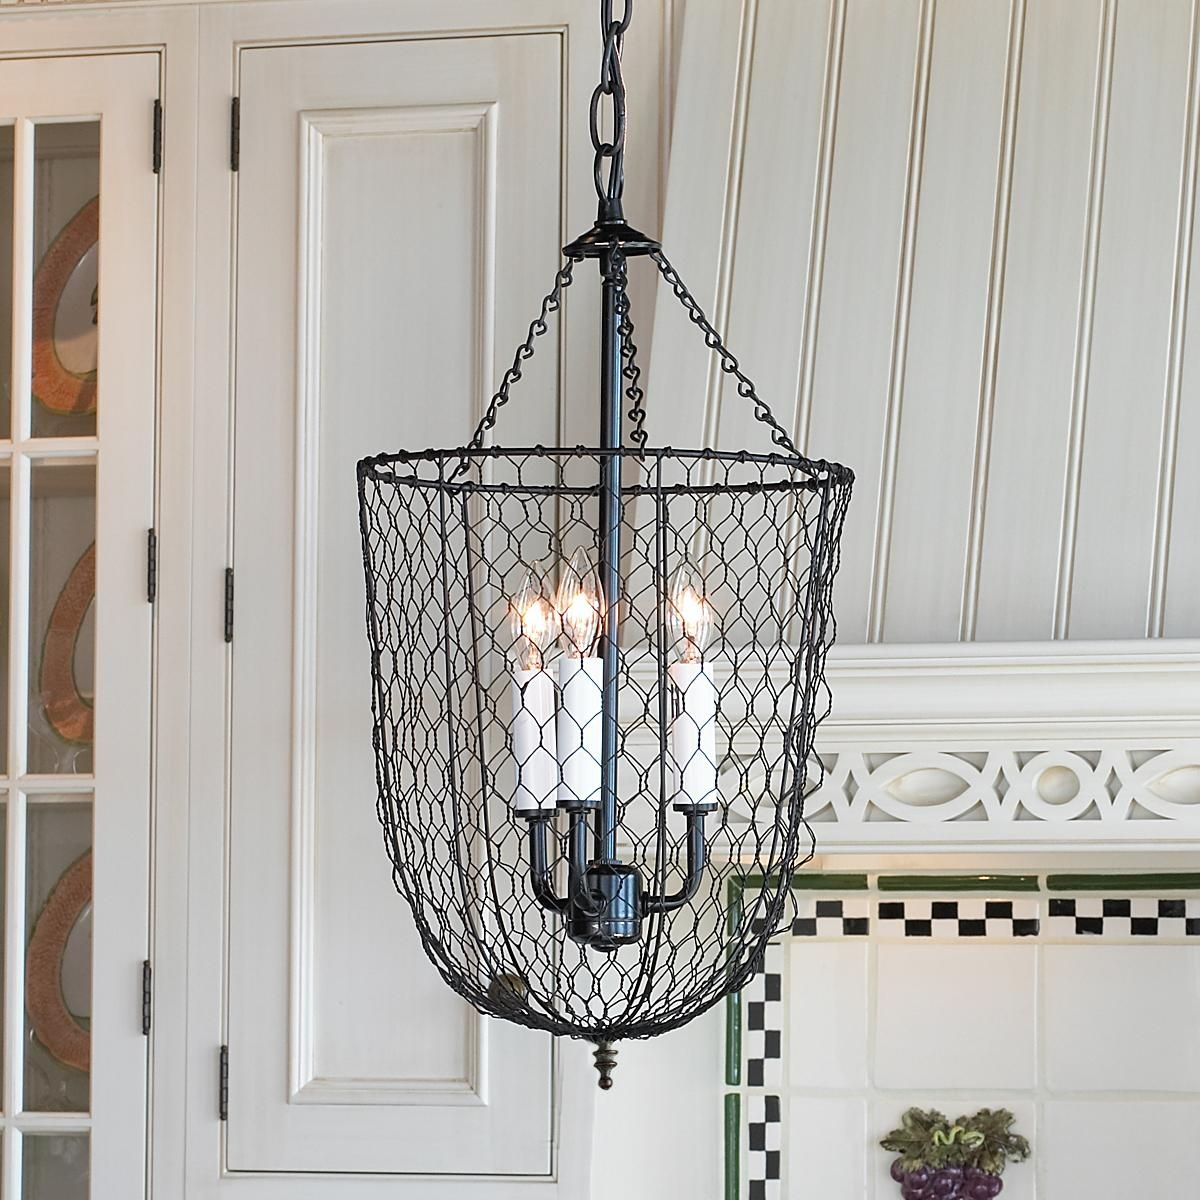 Chicken Wire Smokebell Lantern | Chicken wire